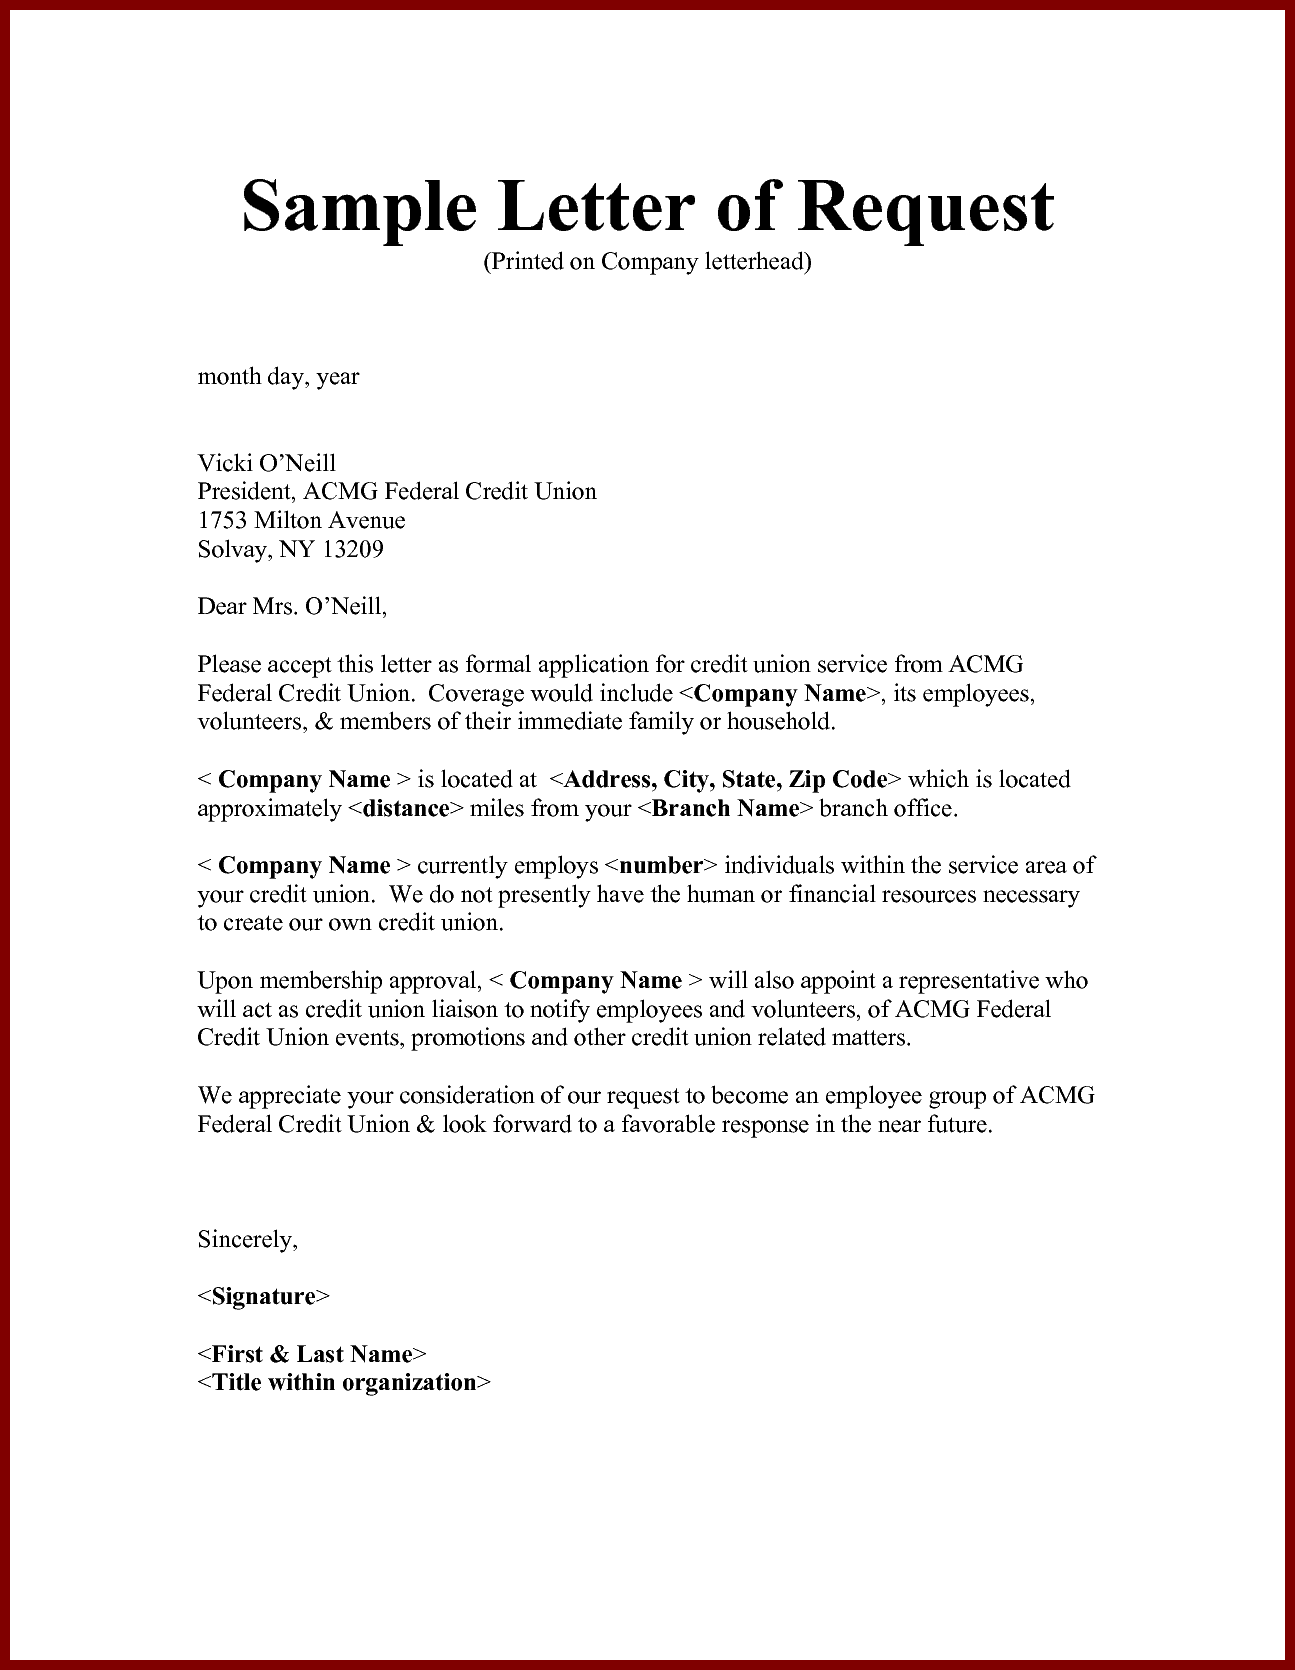 Application letter format for maternity leave college principal application letter format for maternity leave college principal spiritdancerdesigns